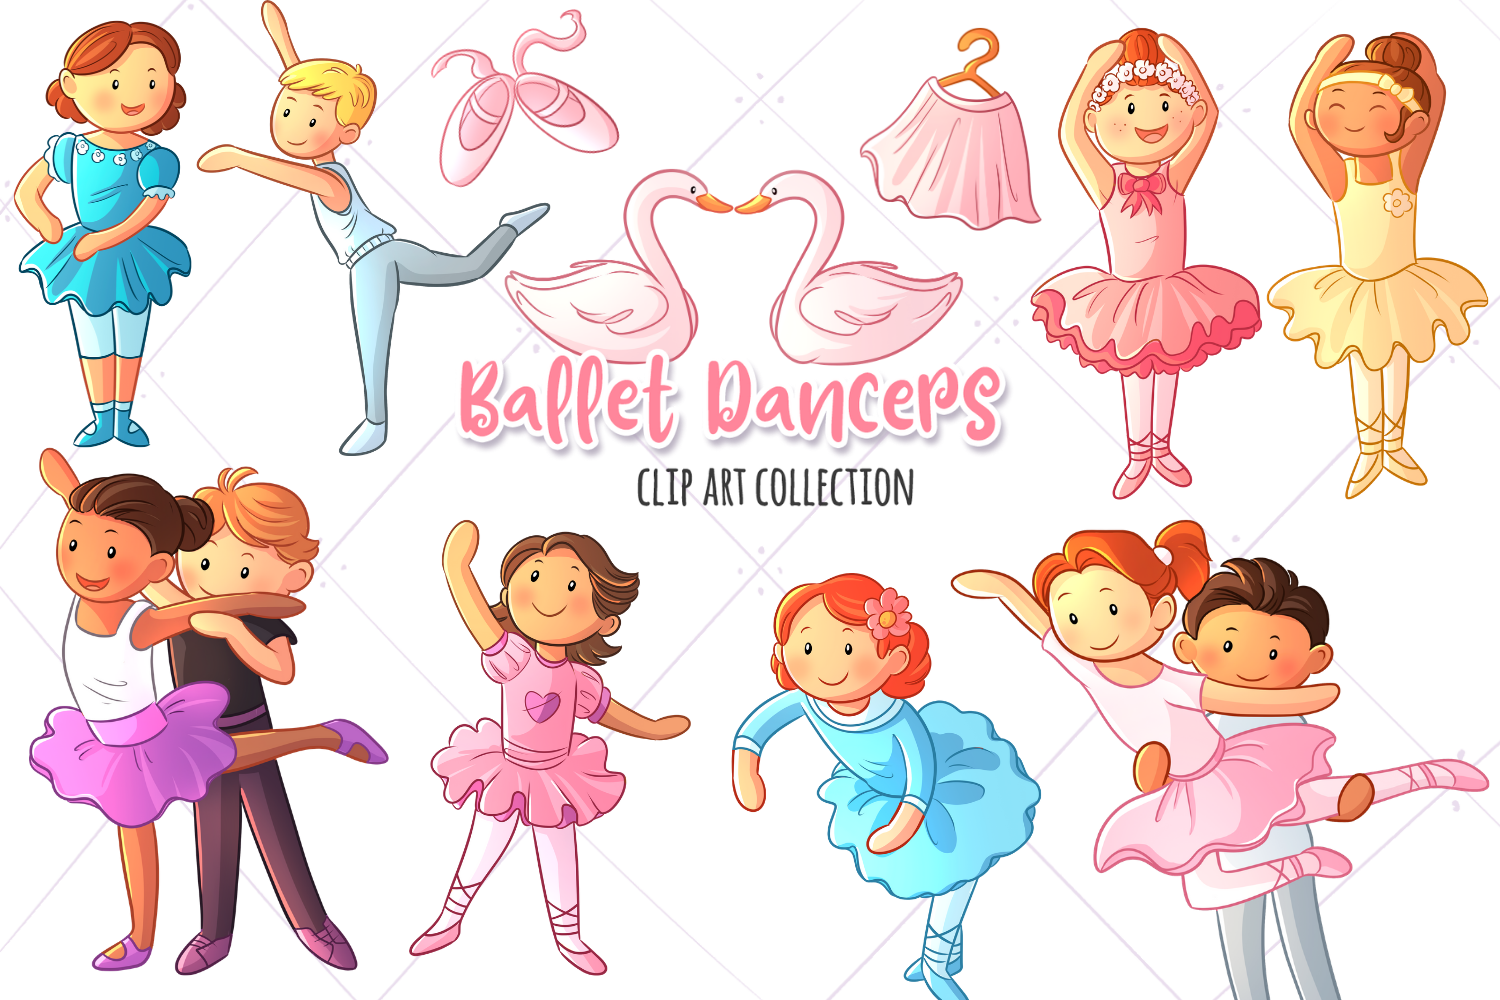 Download Free Ballet Dancers Clip Art Collection Graphic By for Cricut Explore, Silhouette and other cutting machines.